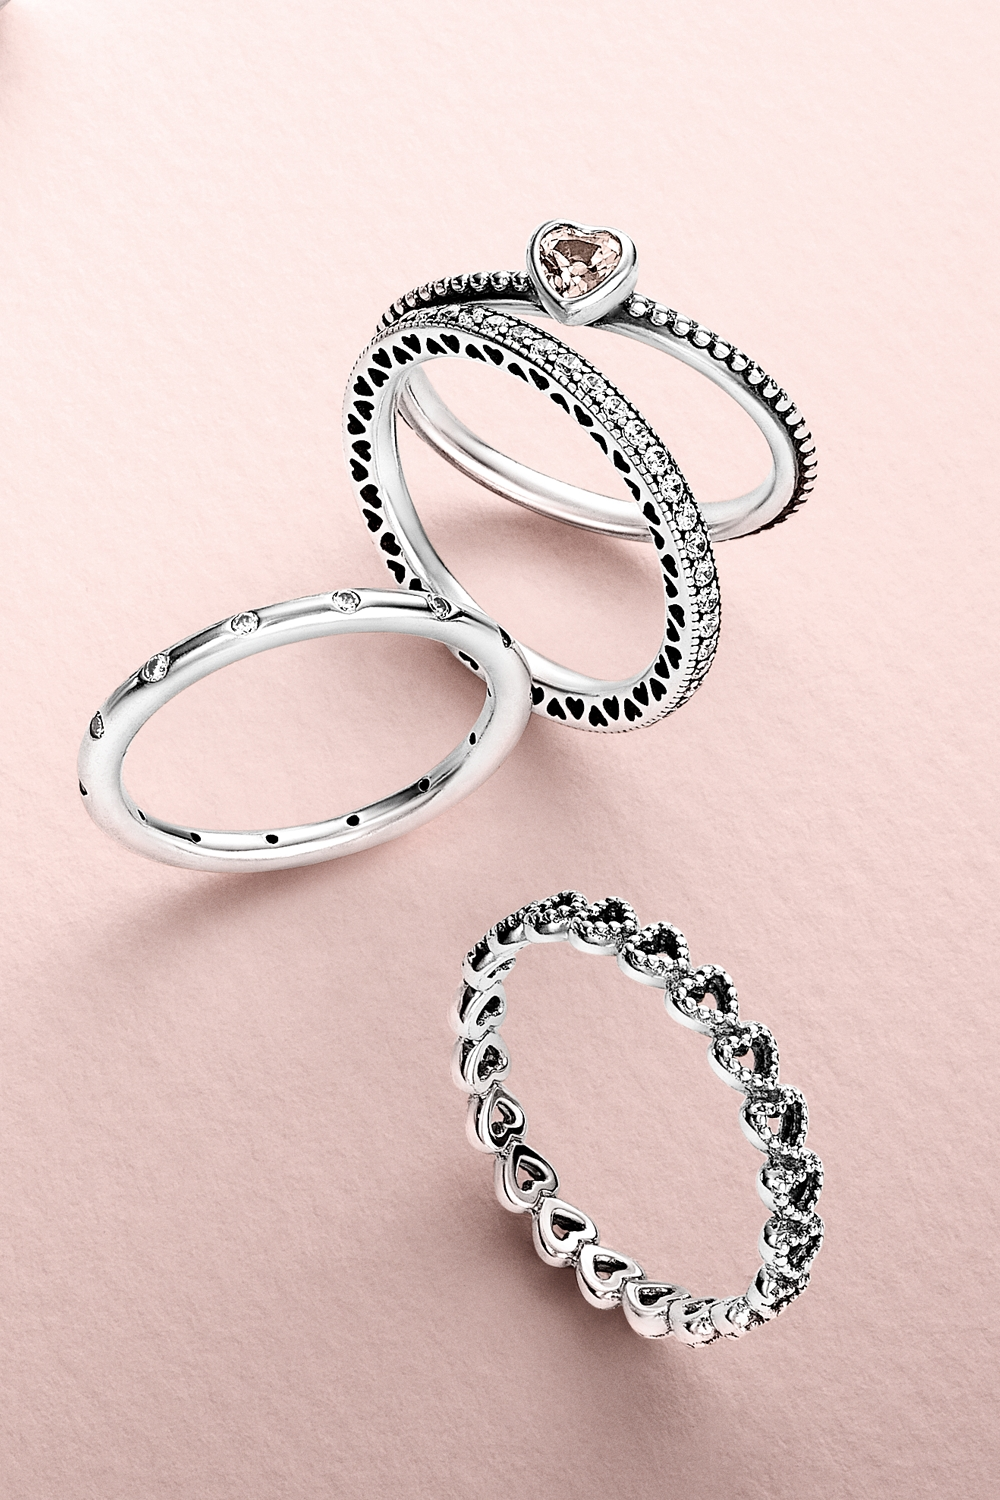 Create A Romantic Lookstacking Cute Heart Shaped Rings Pertaining To Latest Pandora Toe Rings Jewellery (View 3 of 15)